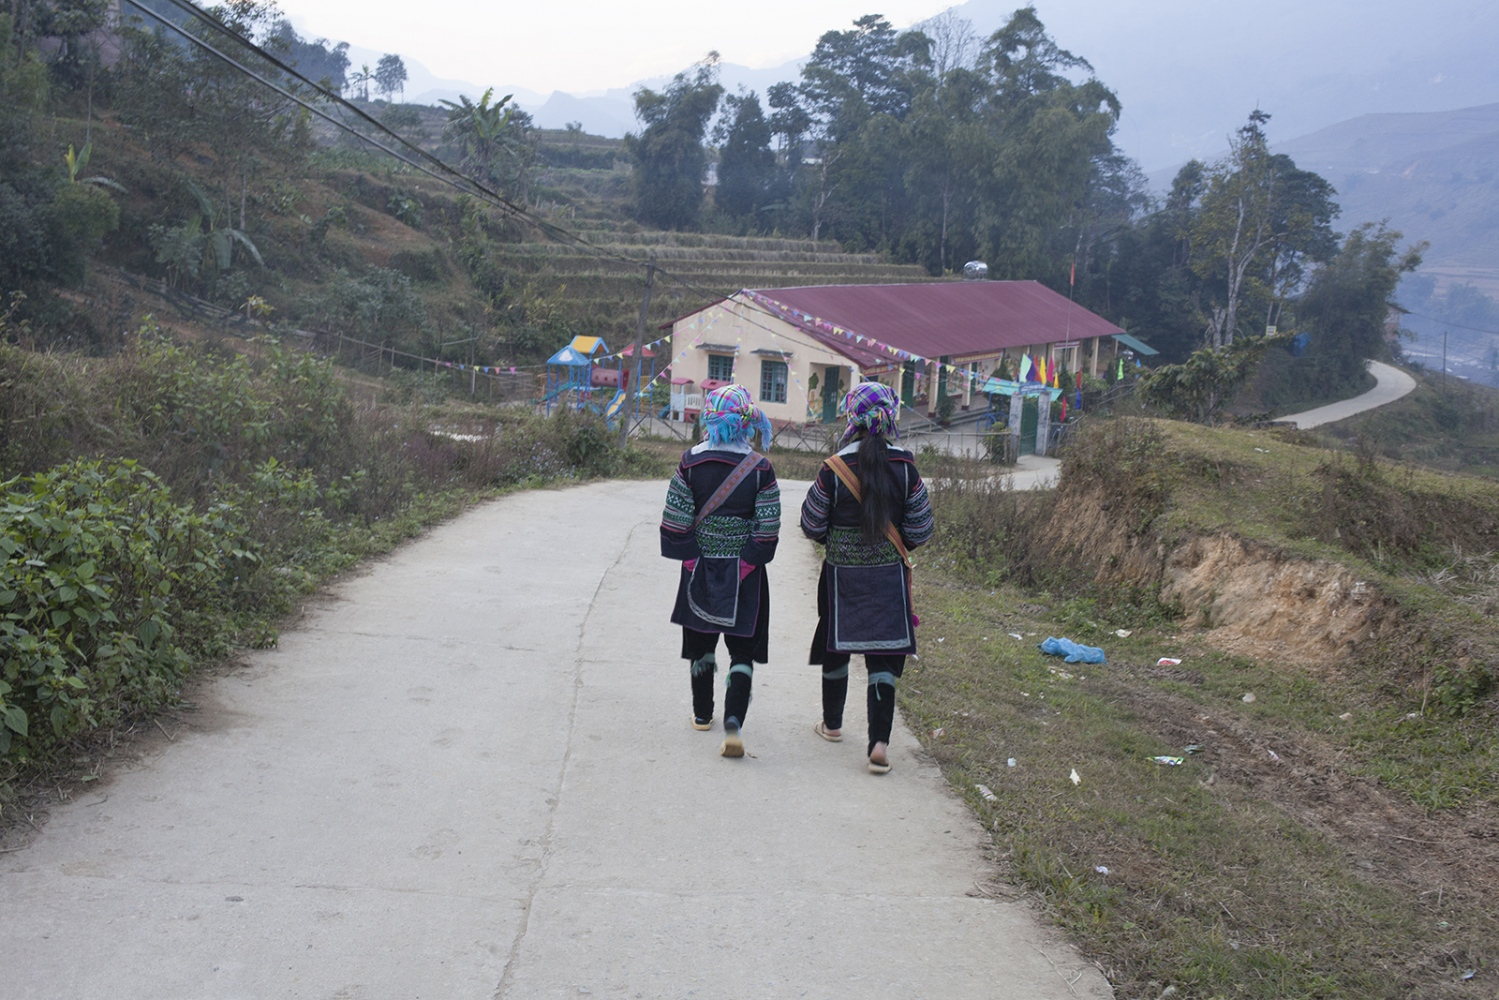 Ling and her friend walking in their traditional dress.